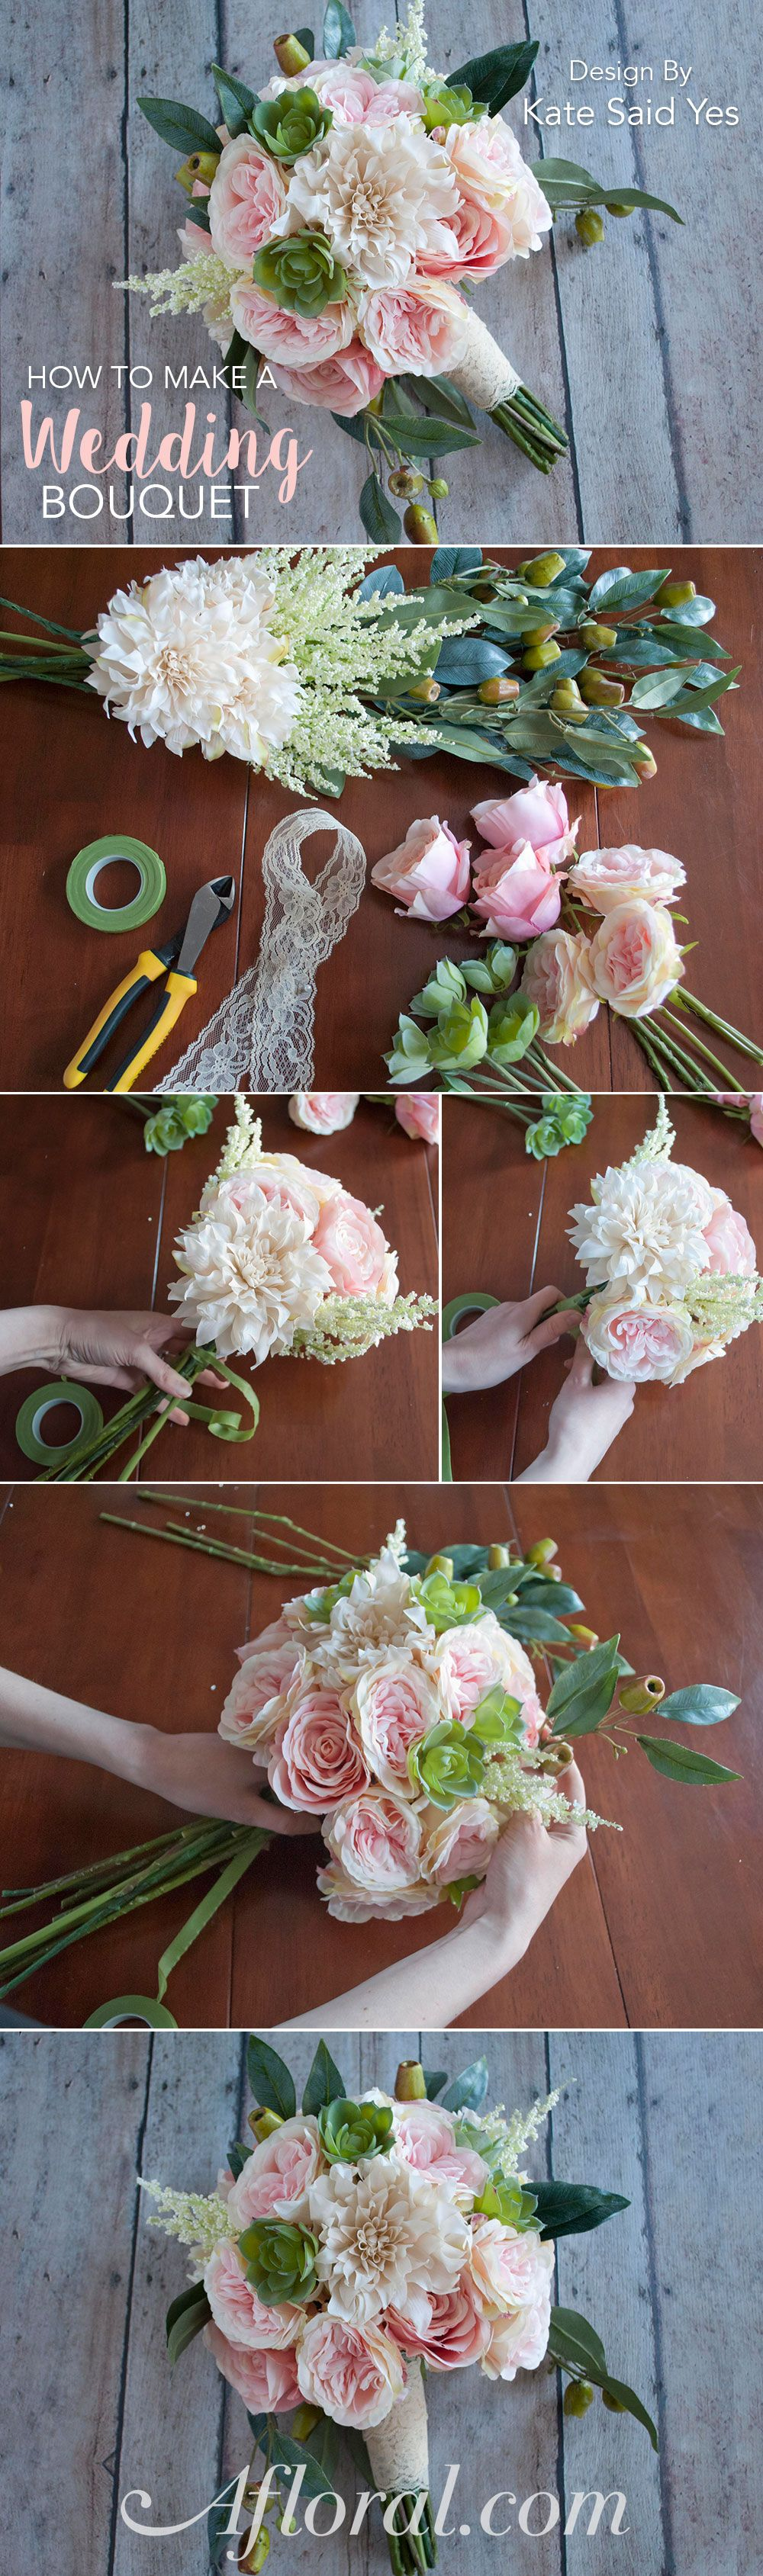 How To Make A Wedding Bouquet Diy wedding flowers, Diy